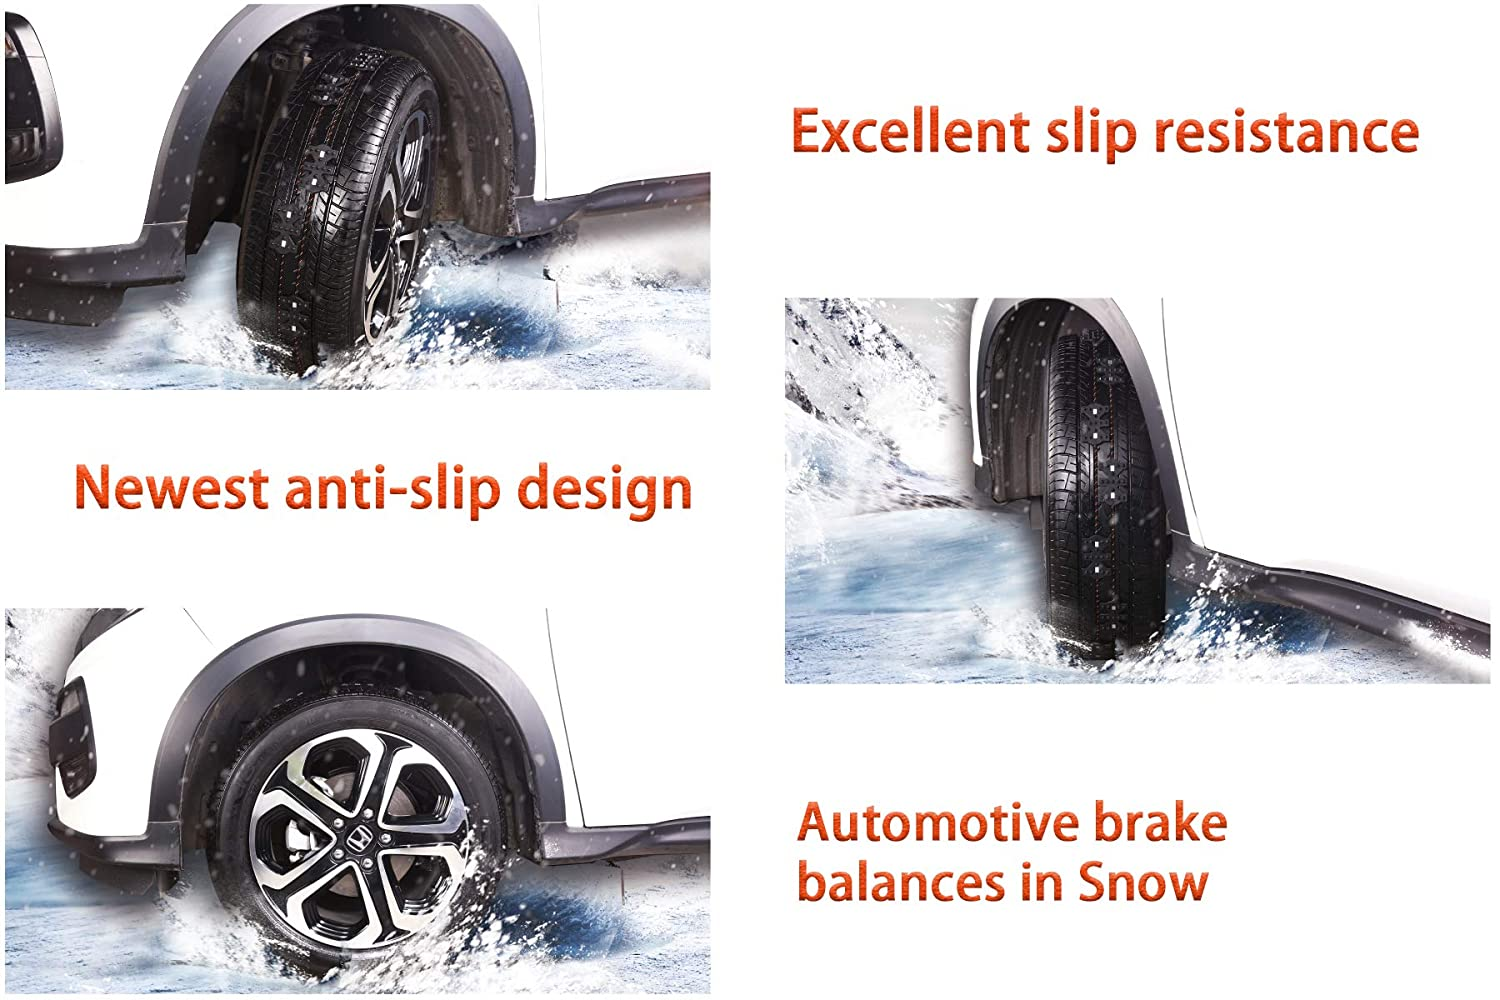 Pickups and SUVs For Passenger Cars Anti-Skid Chains Set of 4 SIZE M SAILINE 2018 Snow Chains Applicable Tires Drainage Channel